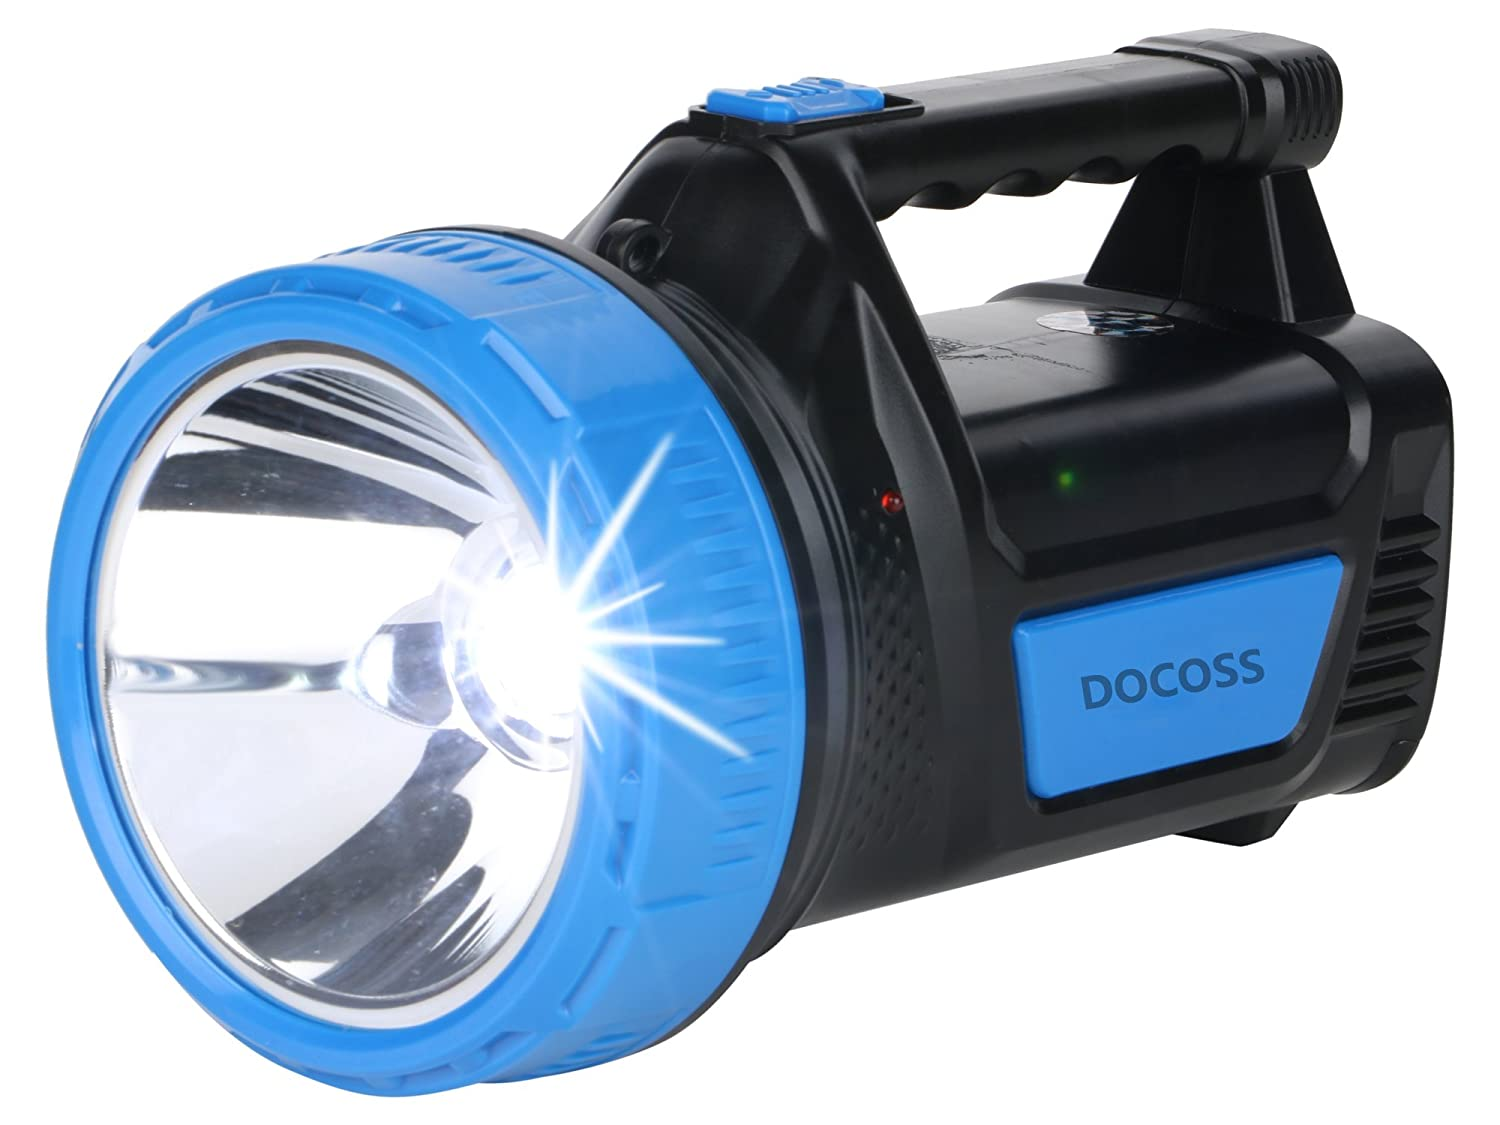 40569e498b7 Buy DOCOSS- ABS 25 W Ultra Bright Waterproof Rechargeable Led Torch Light  Laser Long Range High Power Torch + Emergency Lights Tube (Multi Color)  Online at ...